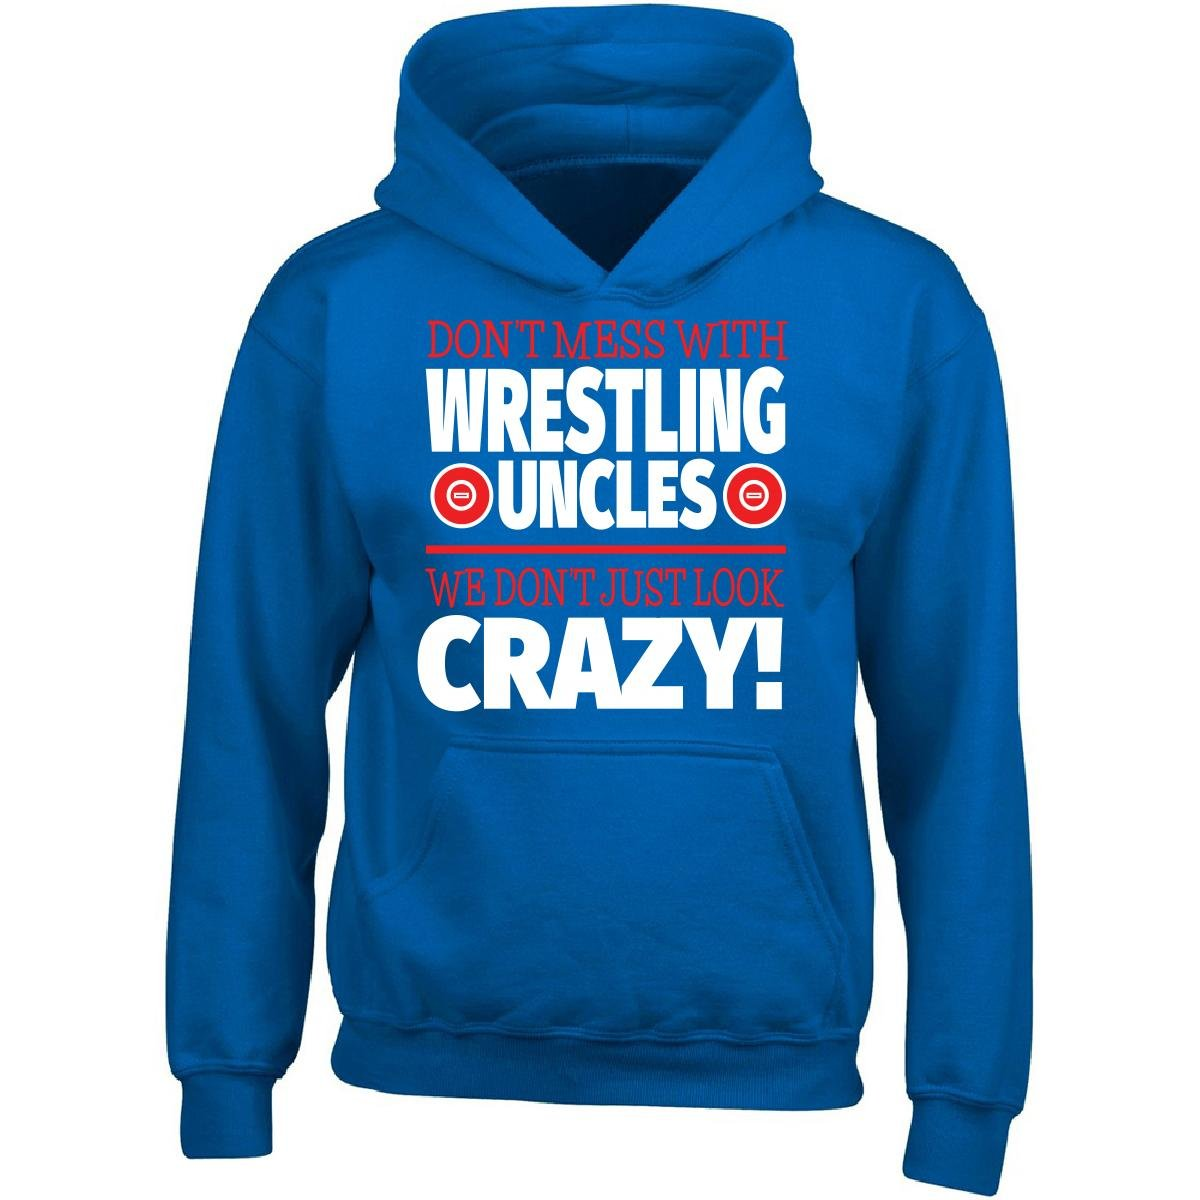 Crazy Wrestling Family - Don't Mess With Wrestling Uncles - Adult Hoodie